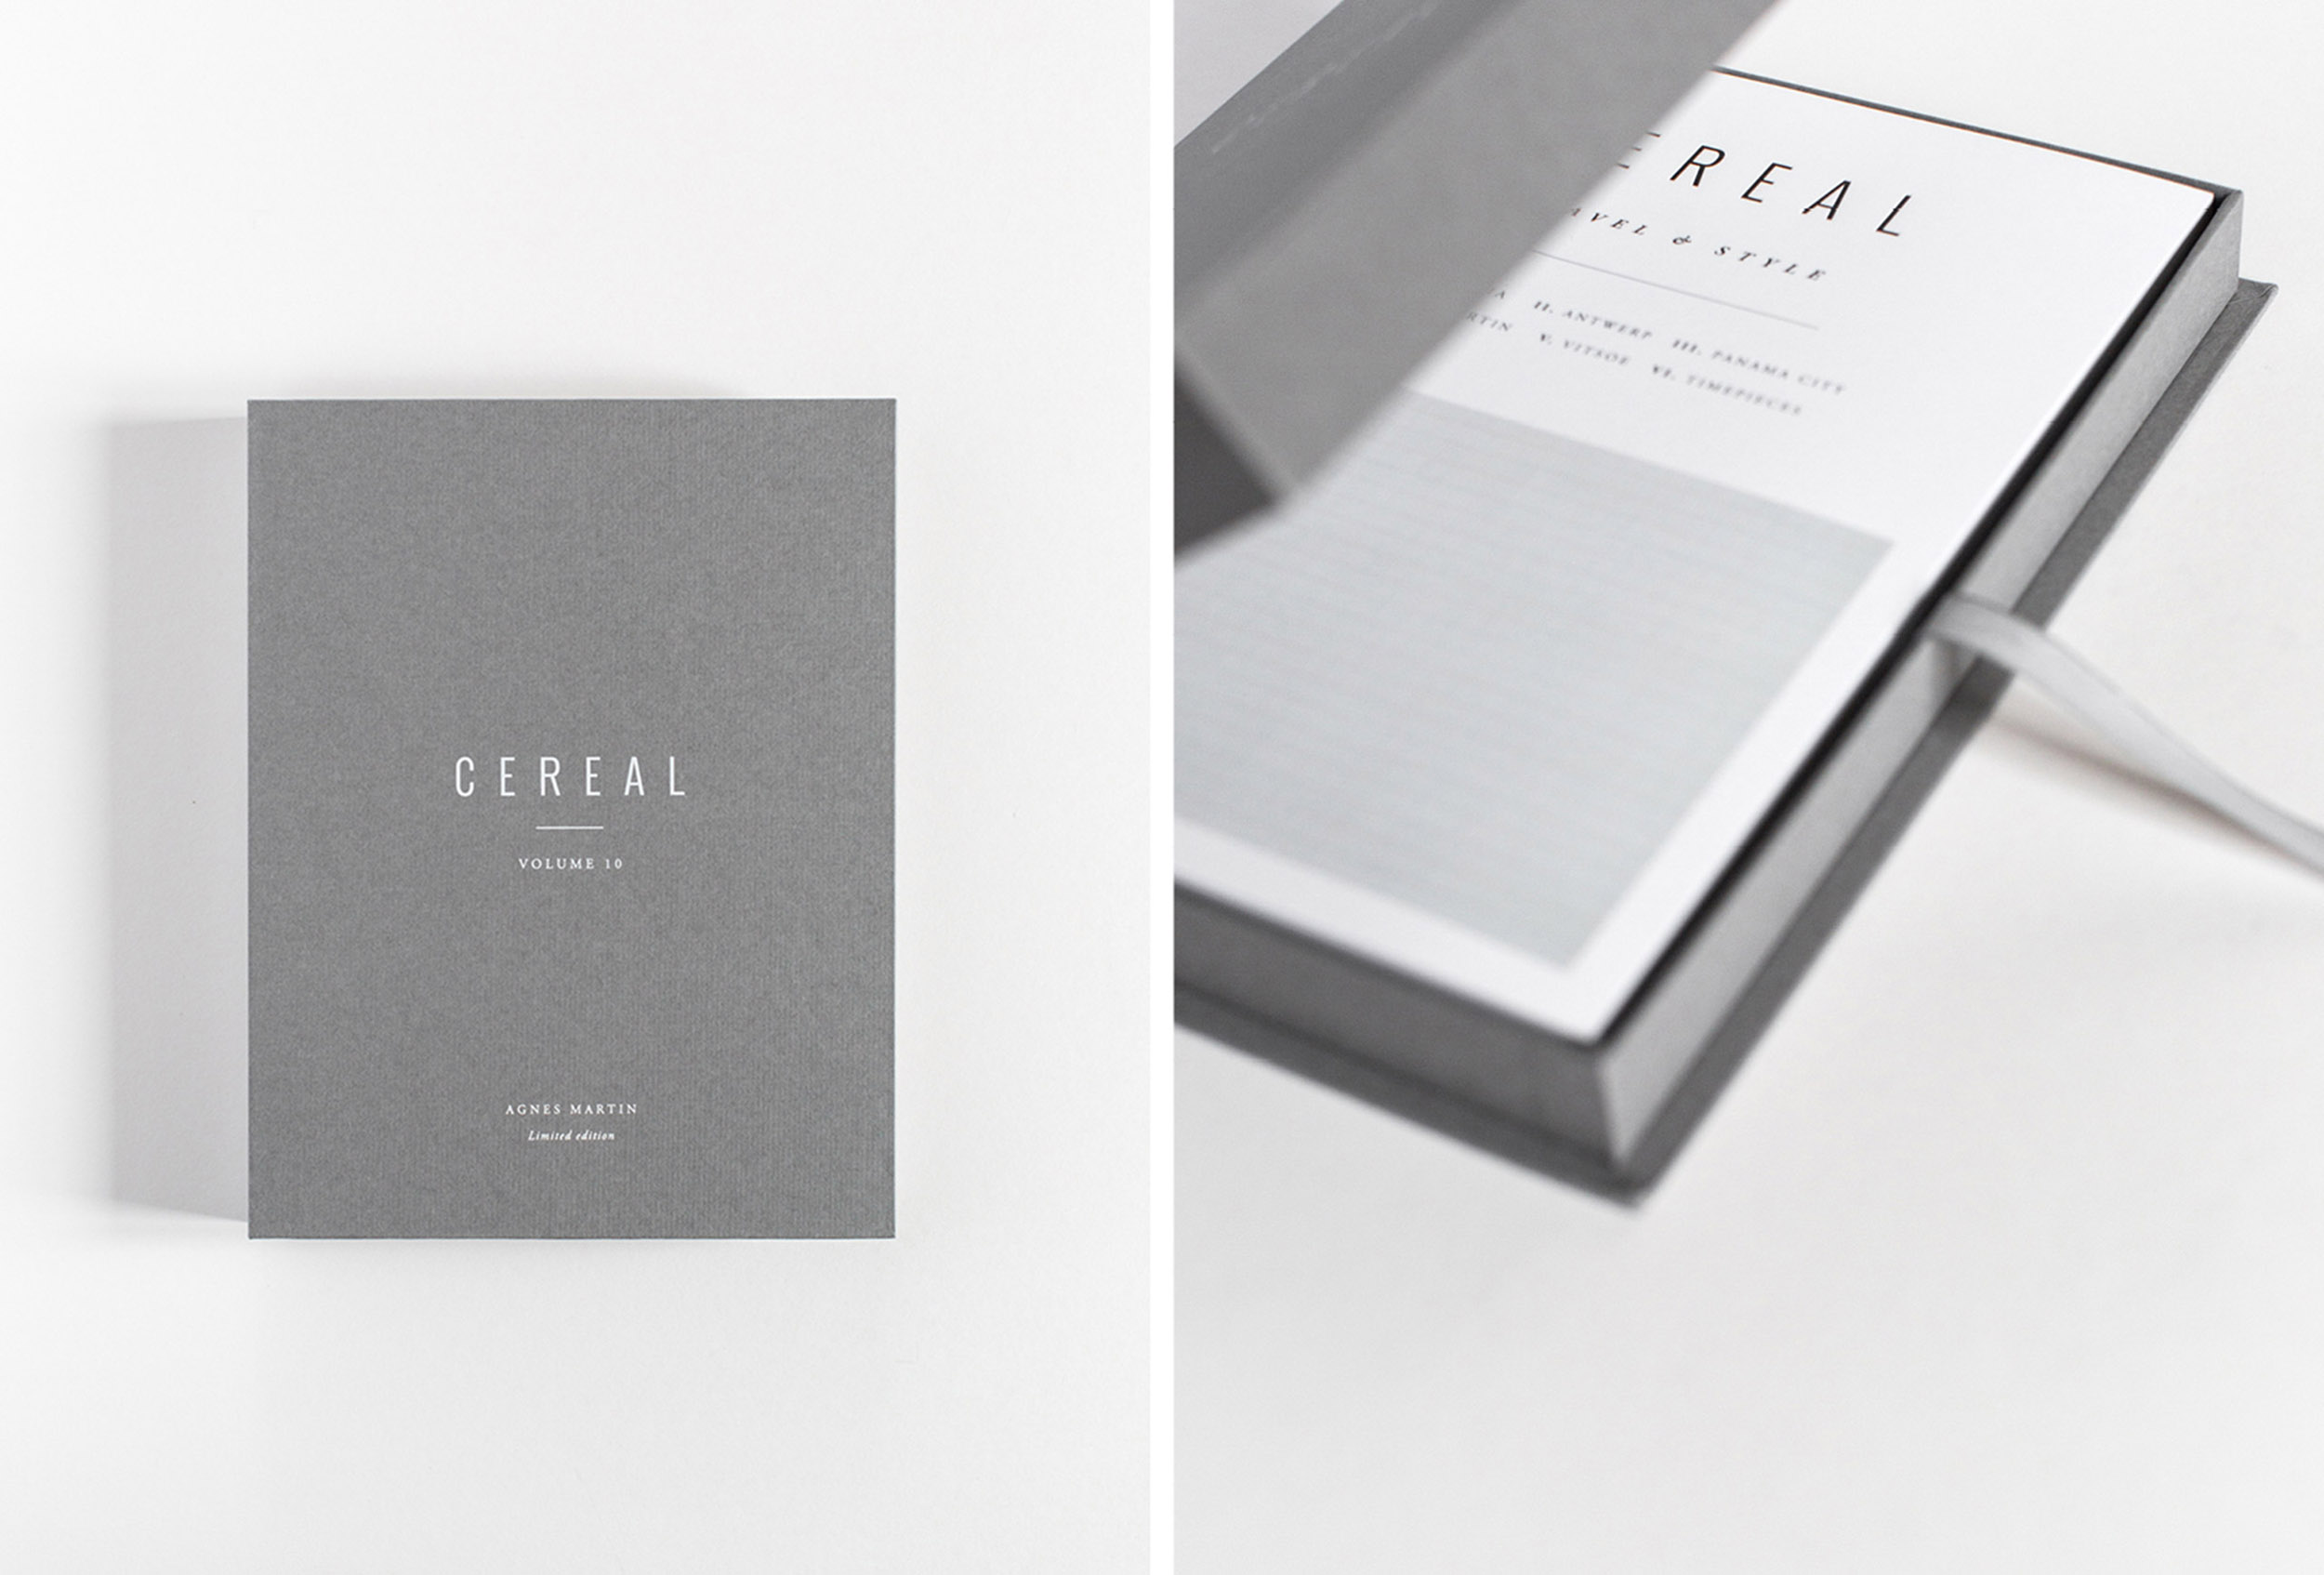 cereal-magazine-agnes-martin-edition-design-by-rich-stapleton